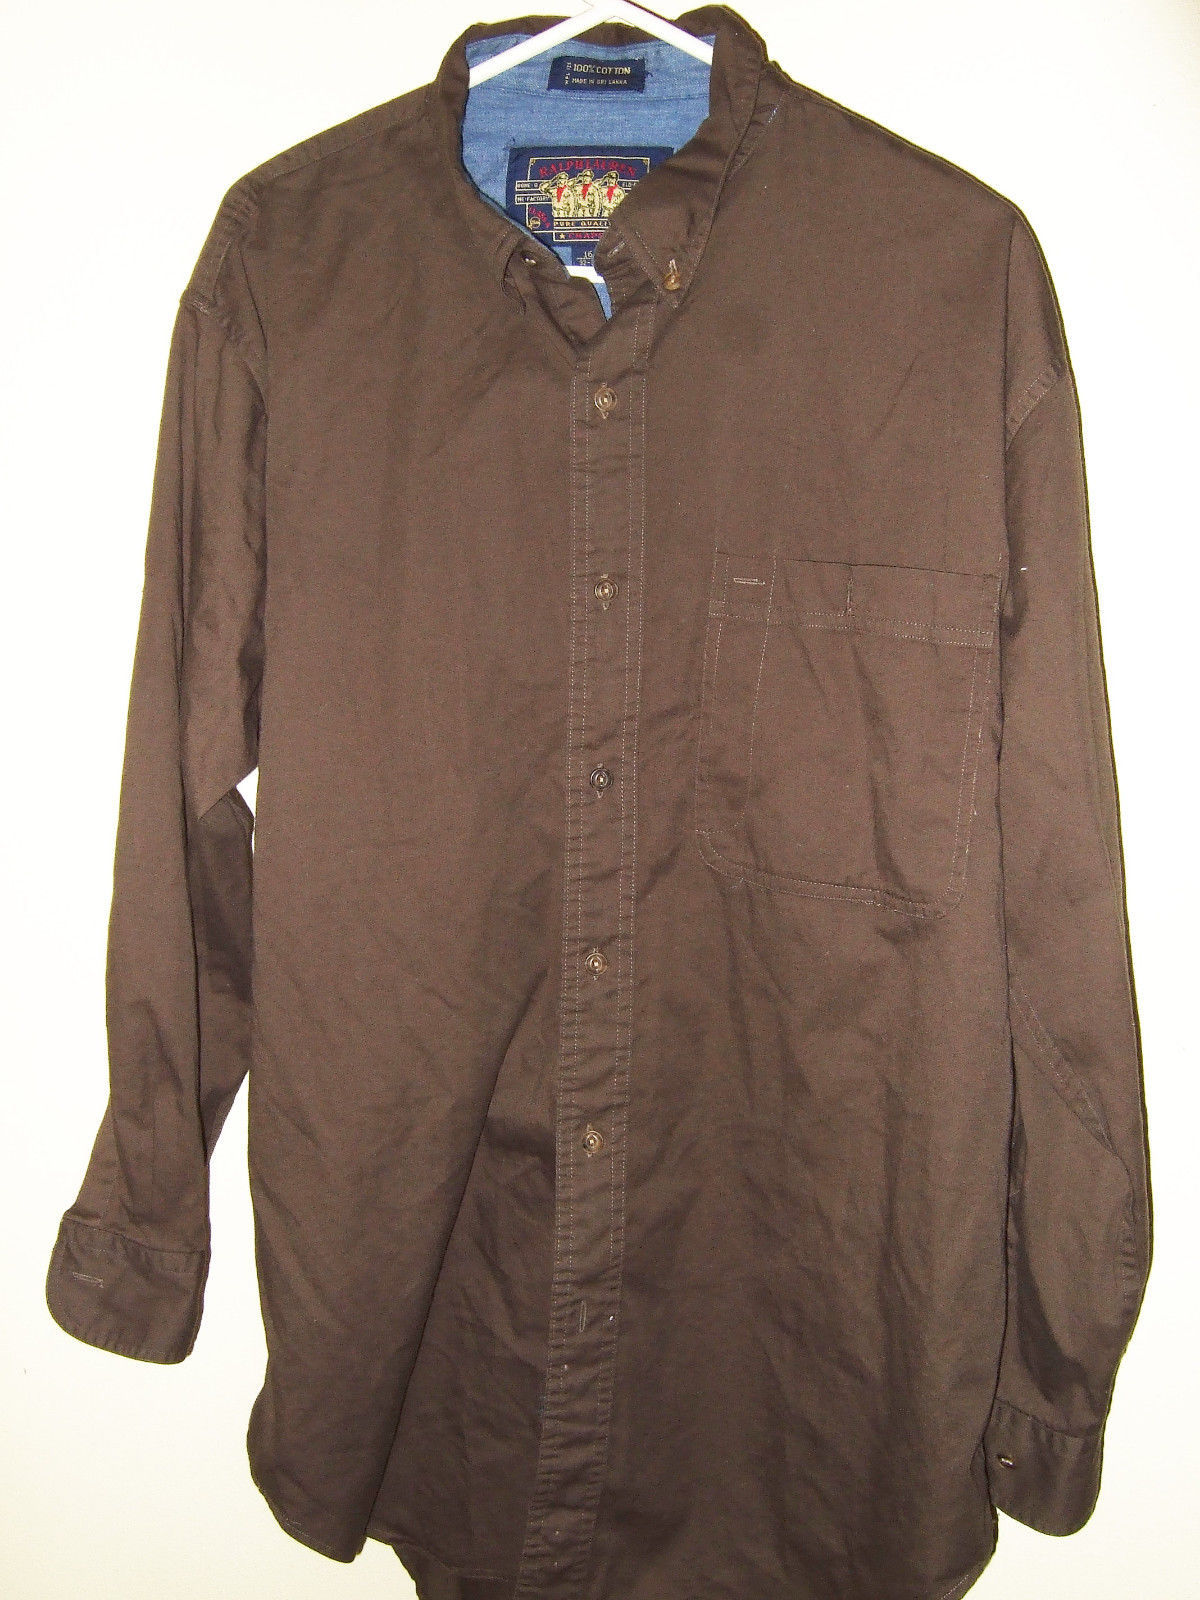 Ralph lauren chaps mens button front dress shirt size 16 for Black brown mens shirts